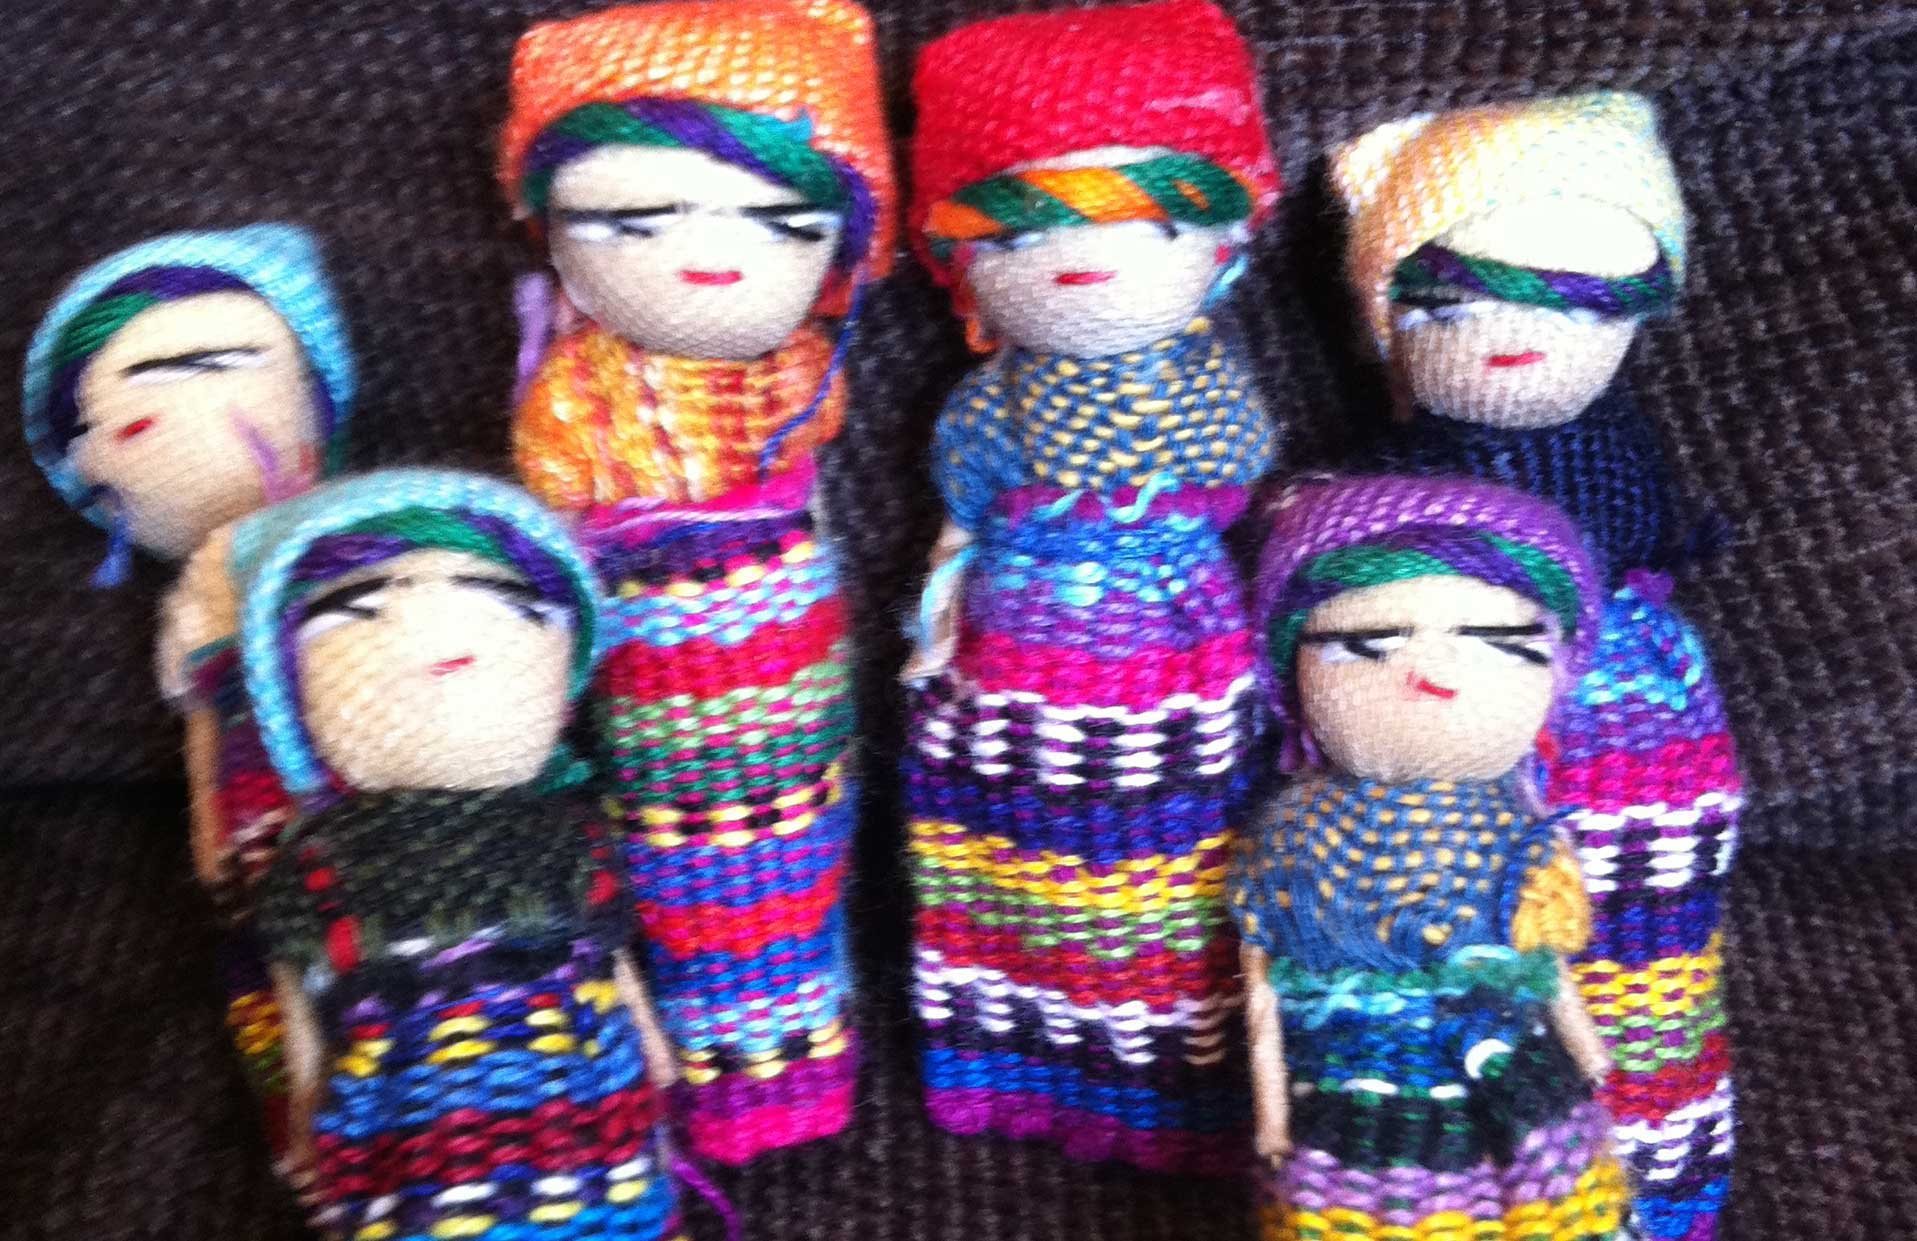 Making the dolls